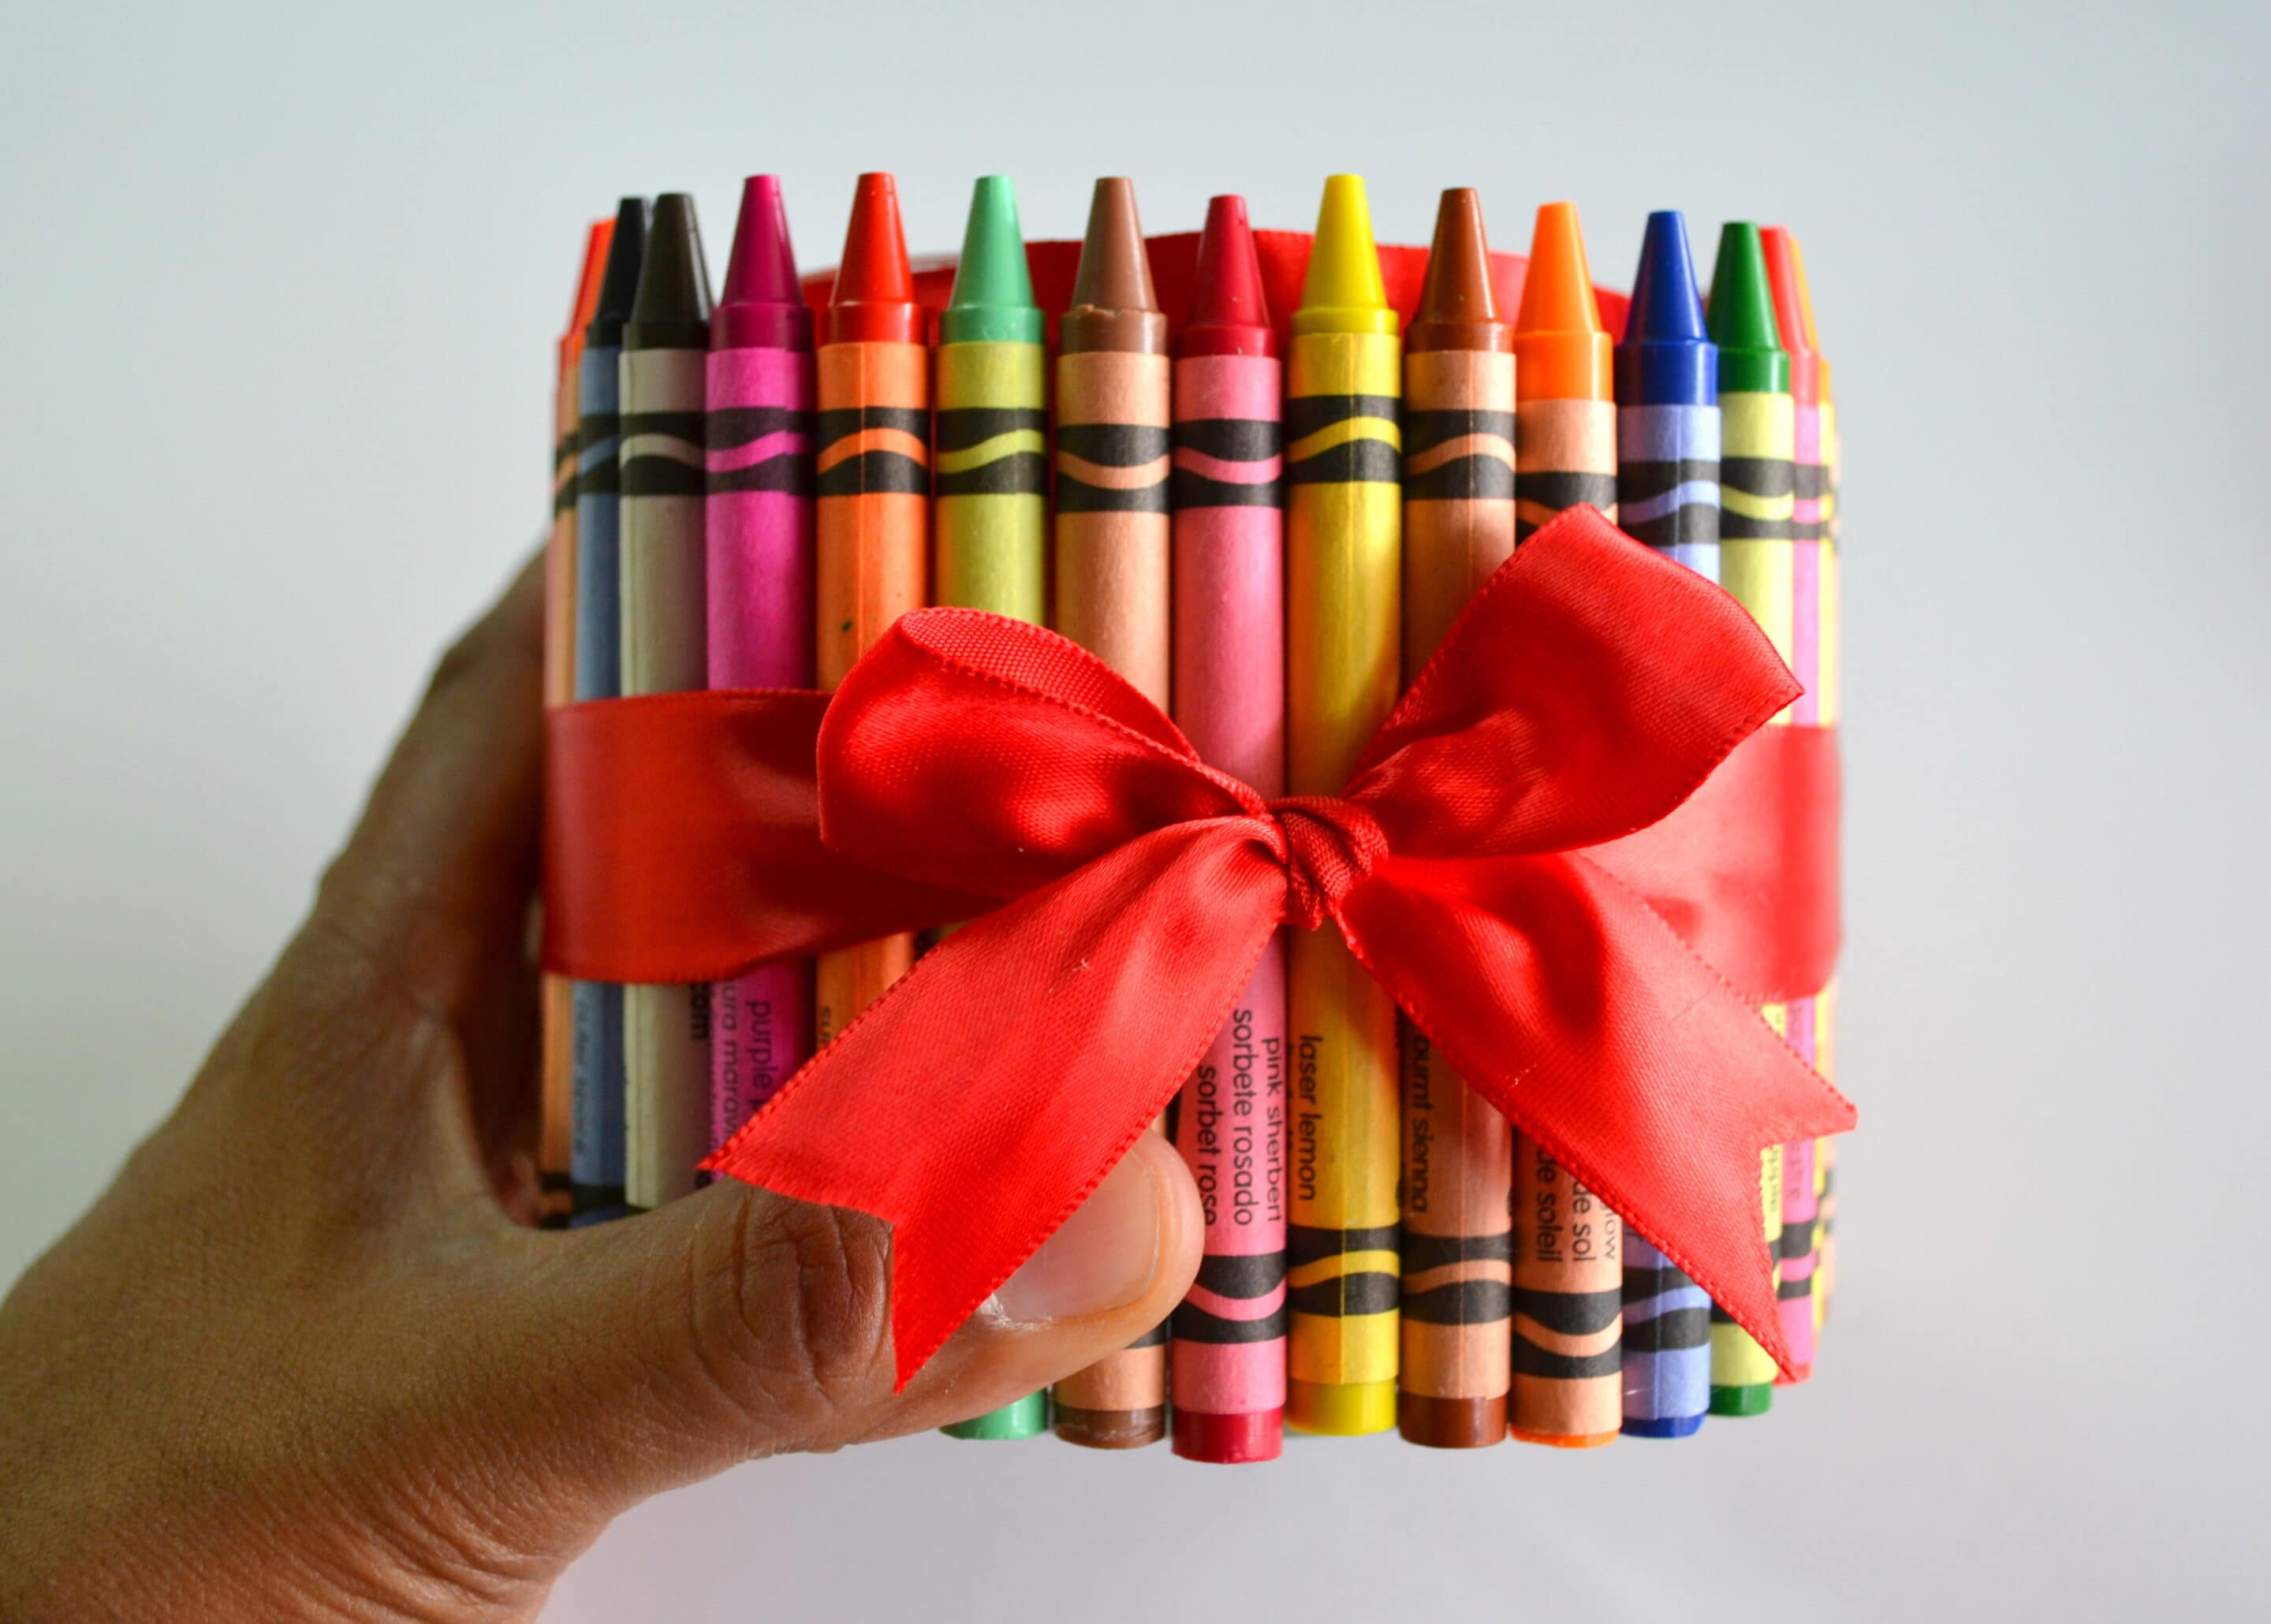 Homemade Pencil Holders Last Minute Gift Ideas For Teacher Appreciation Week